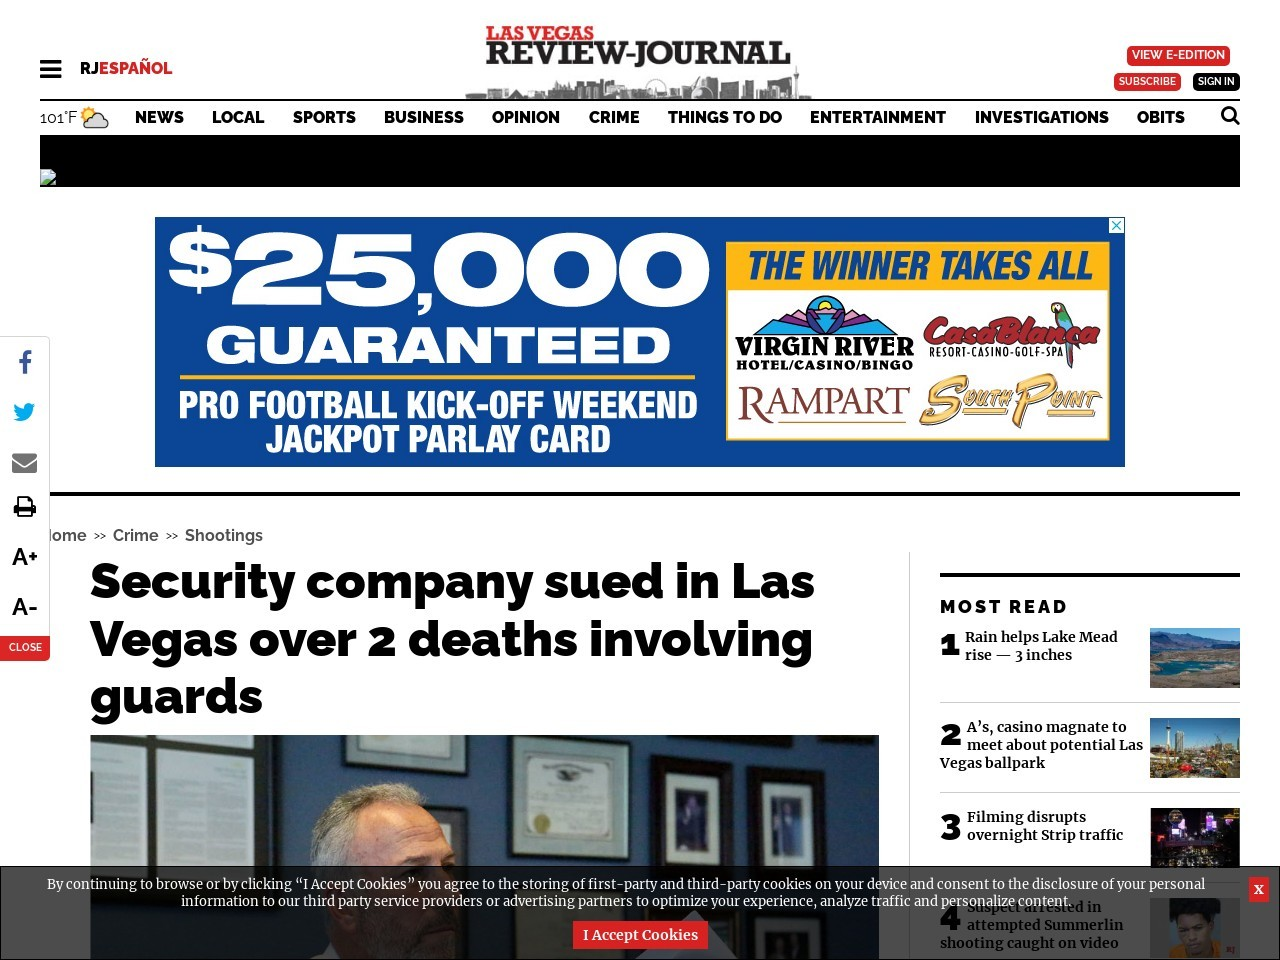 Security company sued in Las Vegas over 2 deaths involving guards